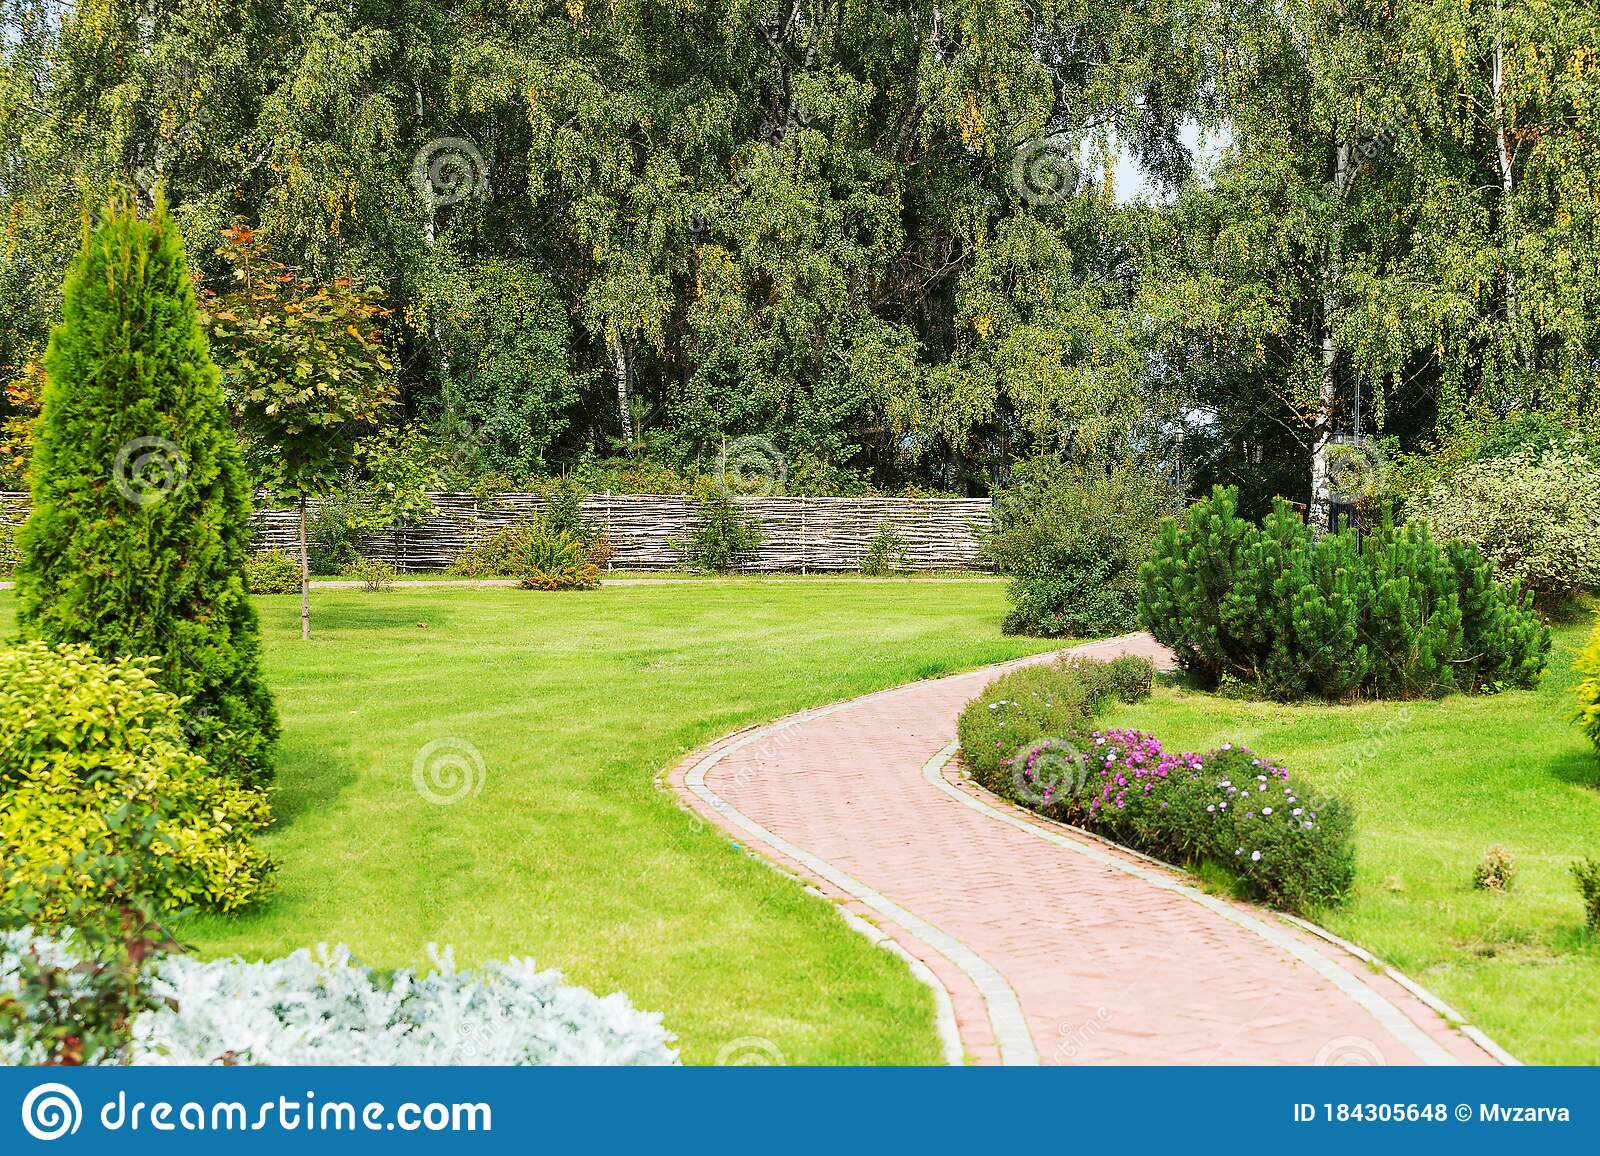 Beautiful Corner Of Nature With A Path And A Fence Stock Photo Image Of Heat River 184305648